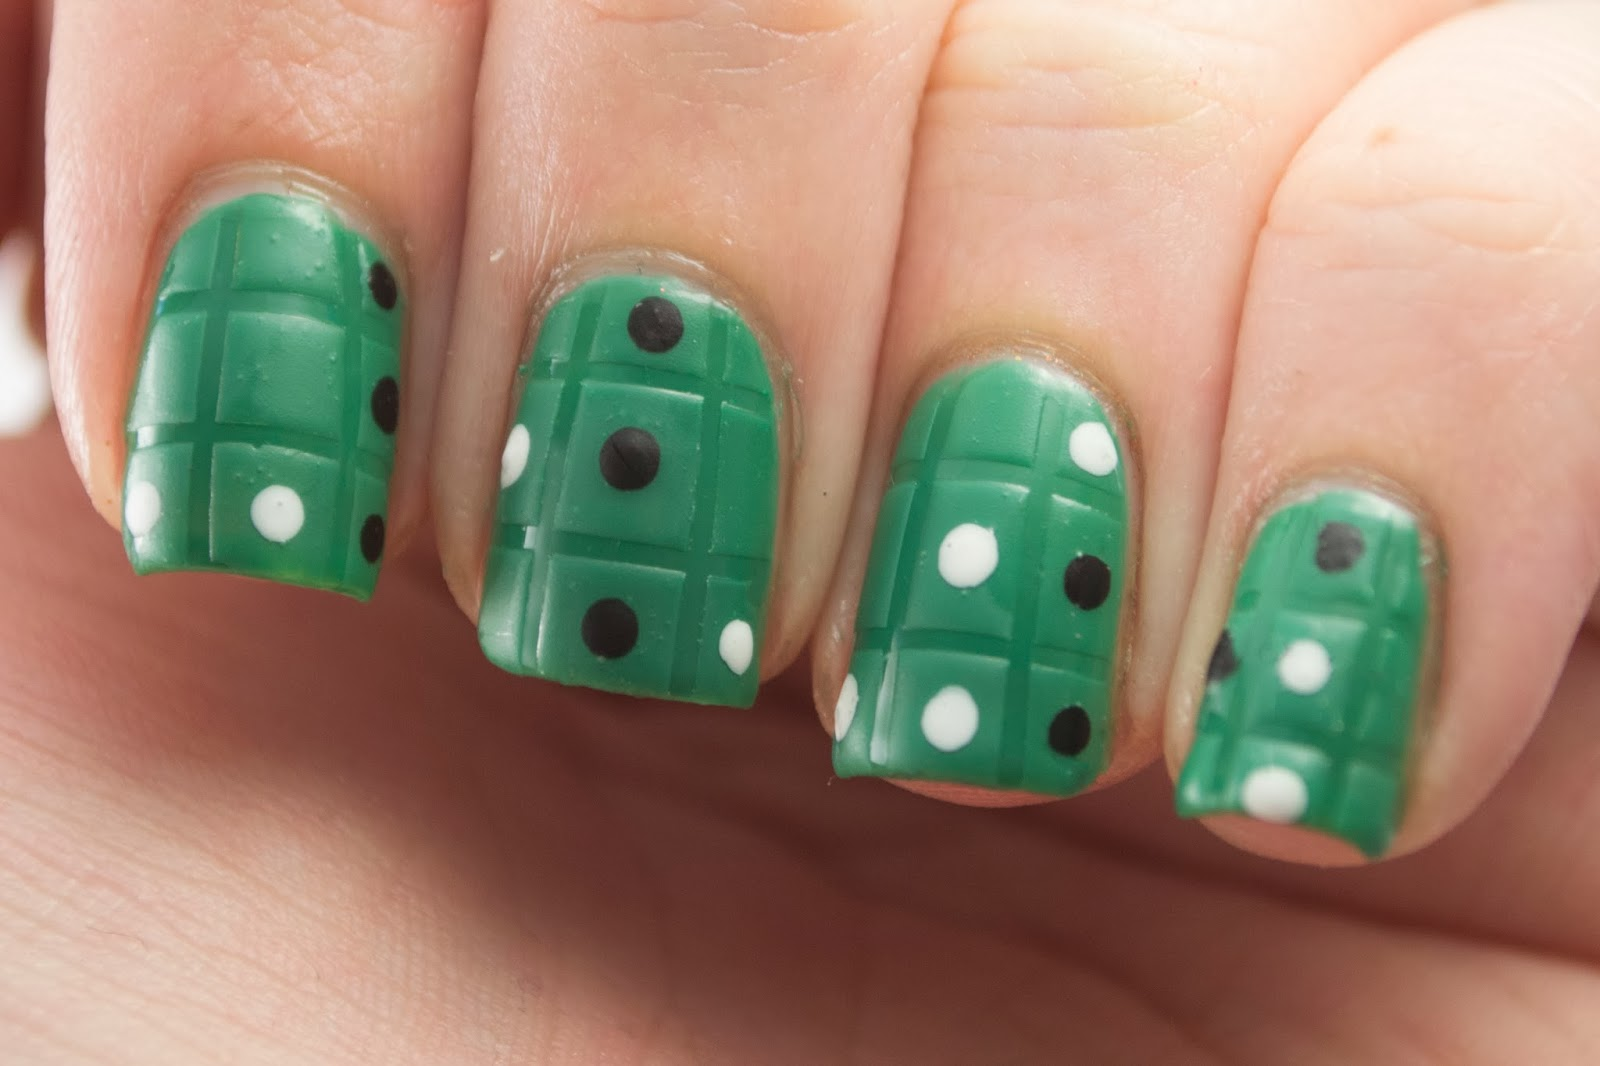 nails, nail art, nail polish, polish, game night, othello, green, dots, grid, matte, hey darling polish, nail art a go go